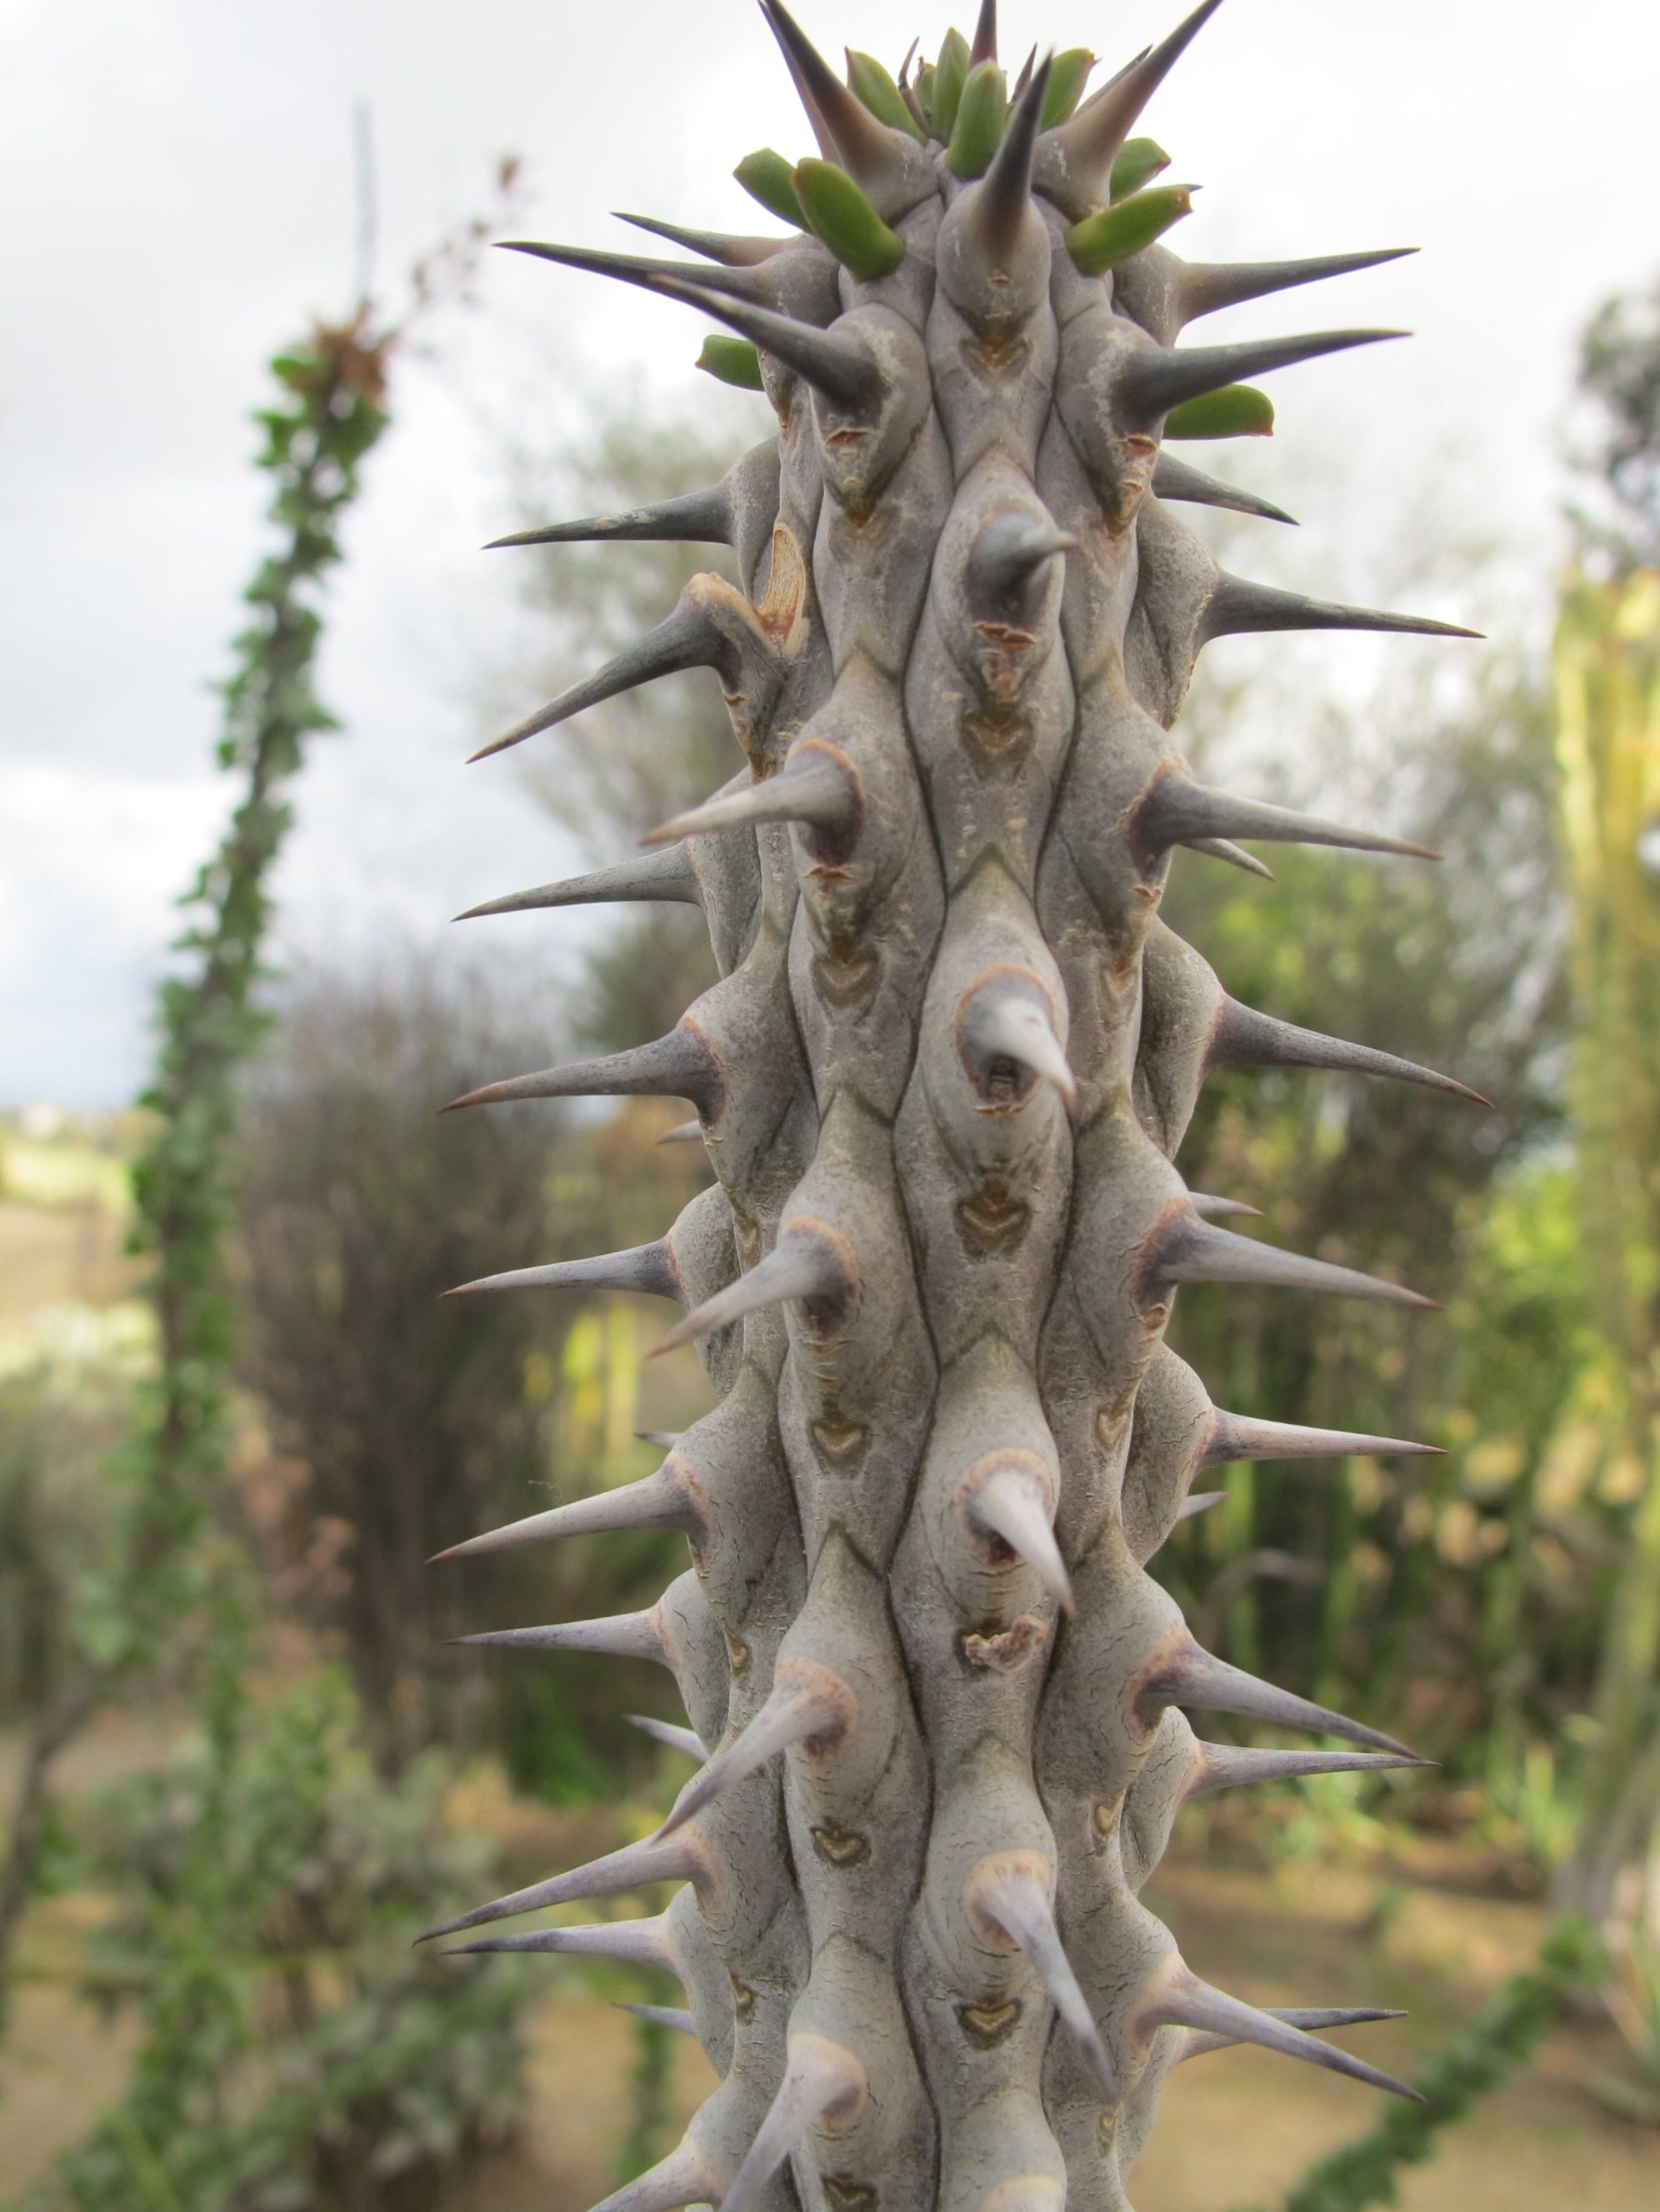 Any of you know what type of cactus this is? We saw it in the garden in Balboa Park.